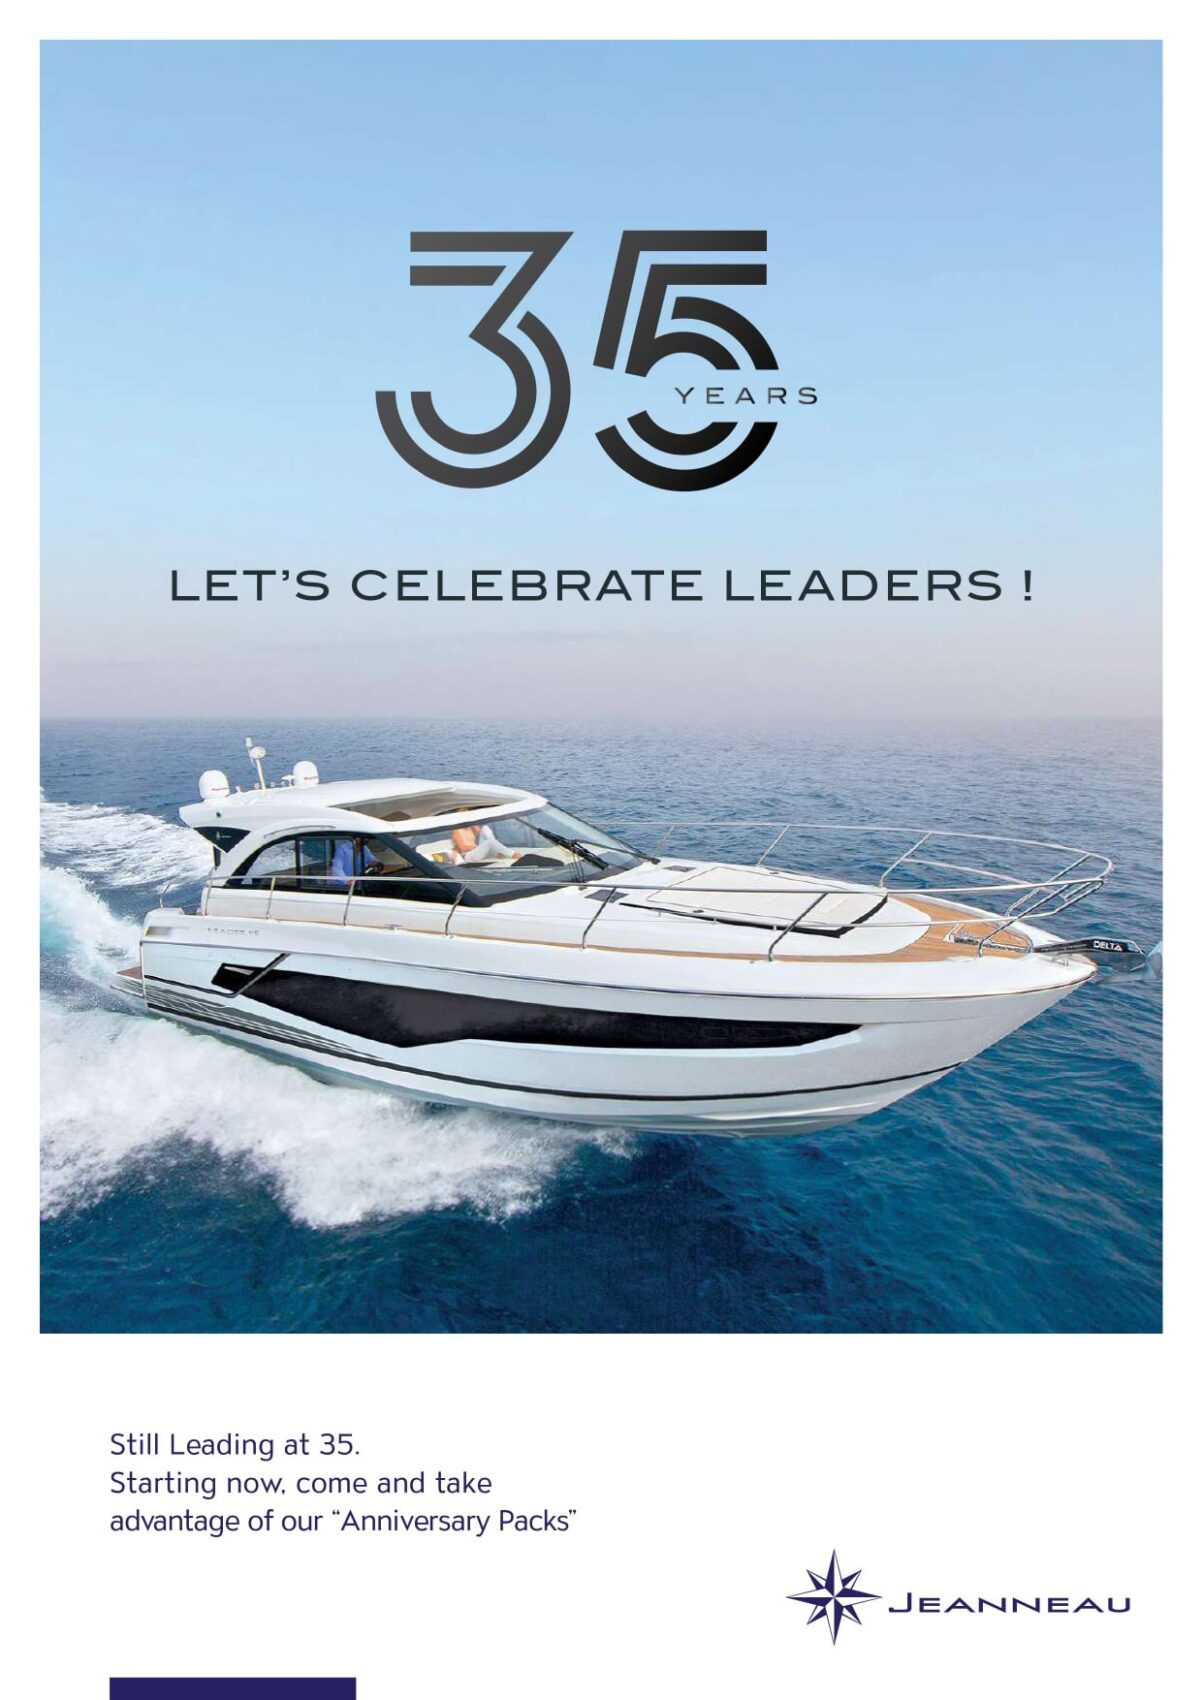 JEANNEAU IS CELEBRATING 35 YEARS!